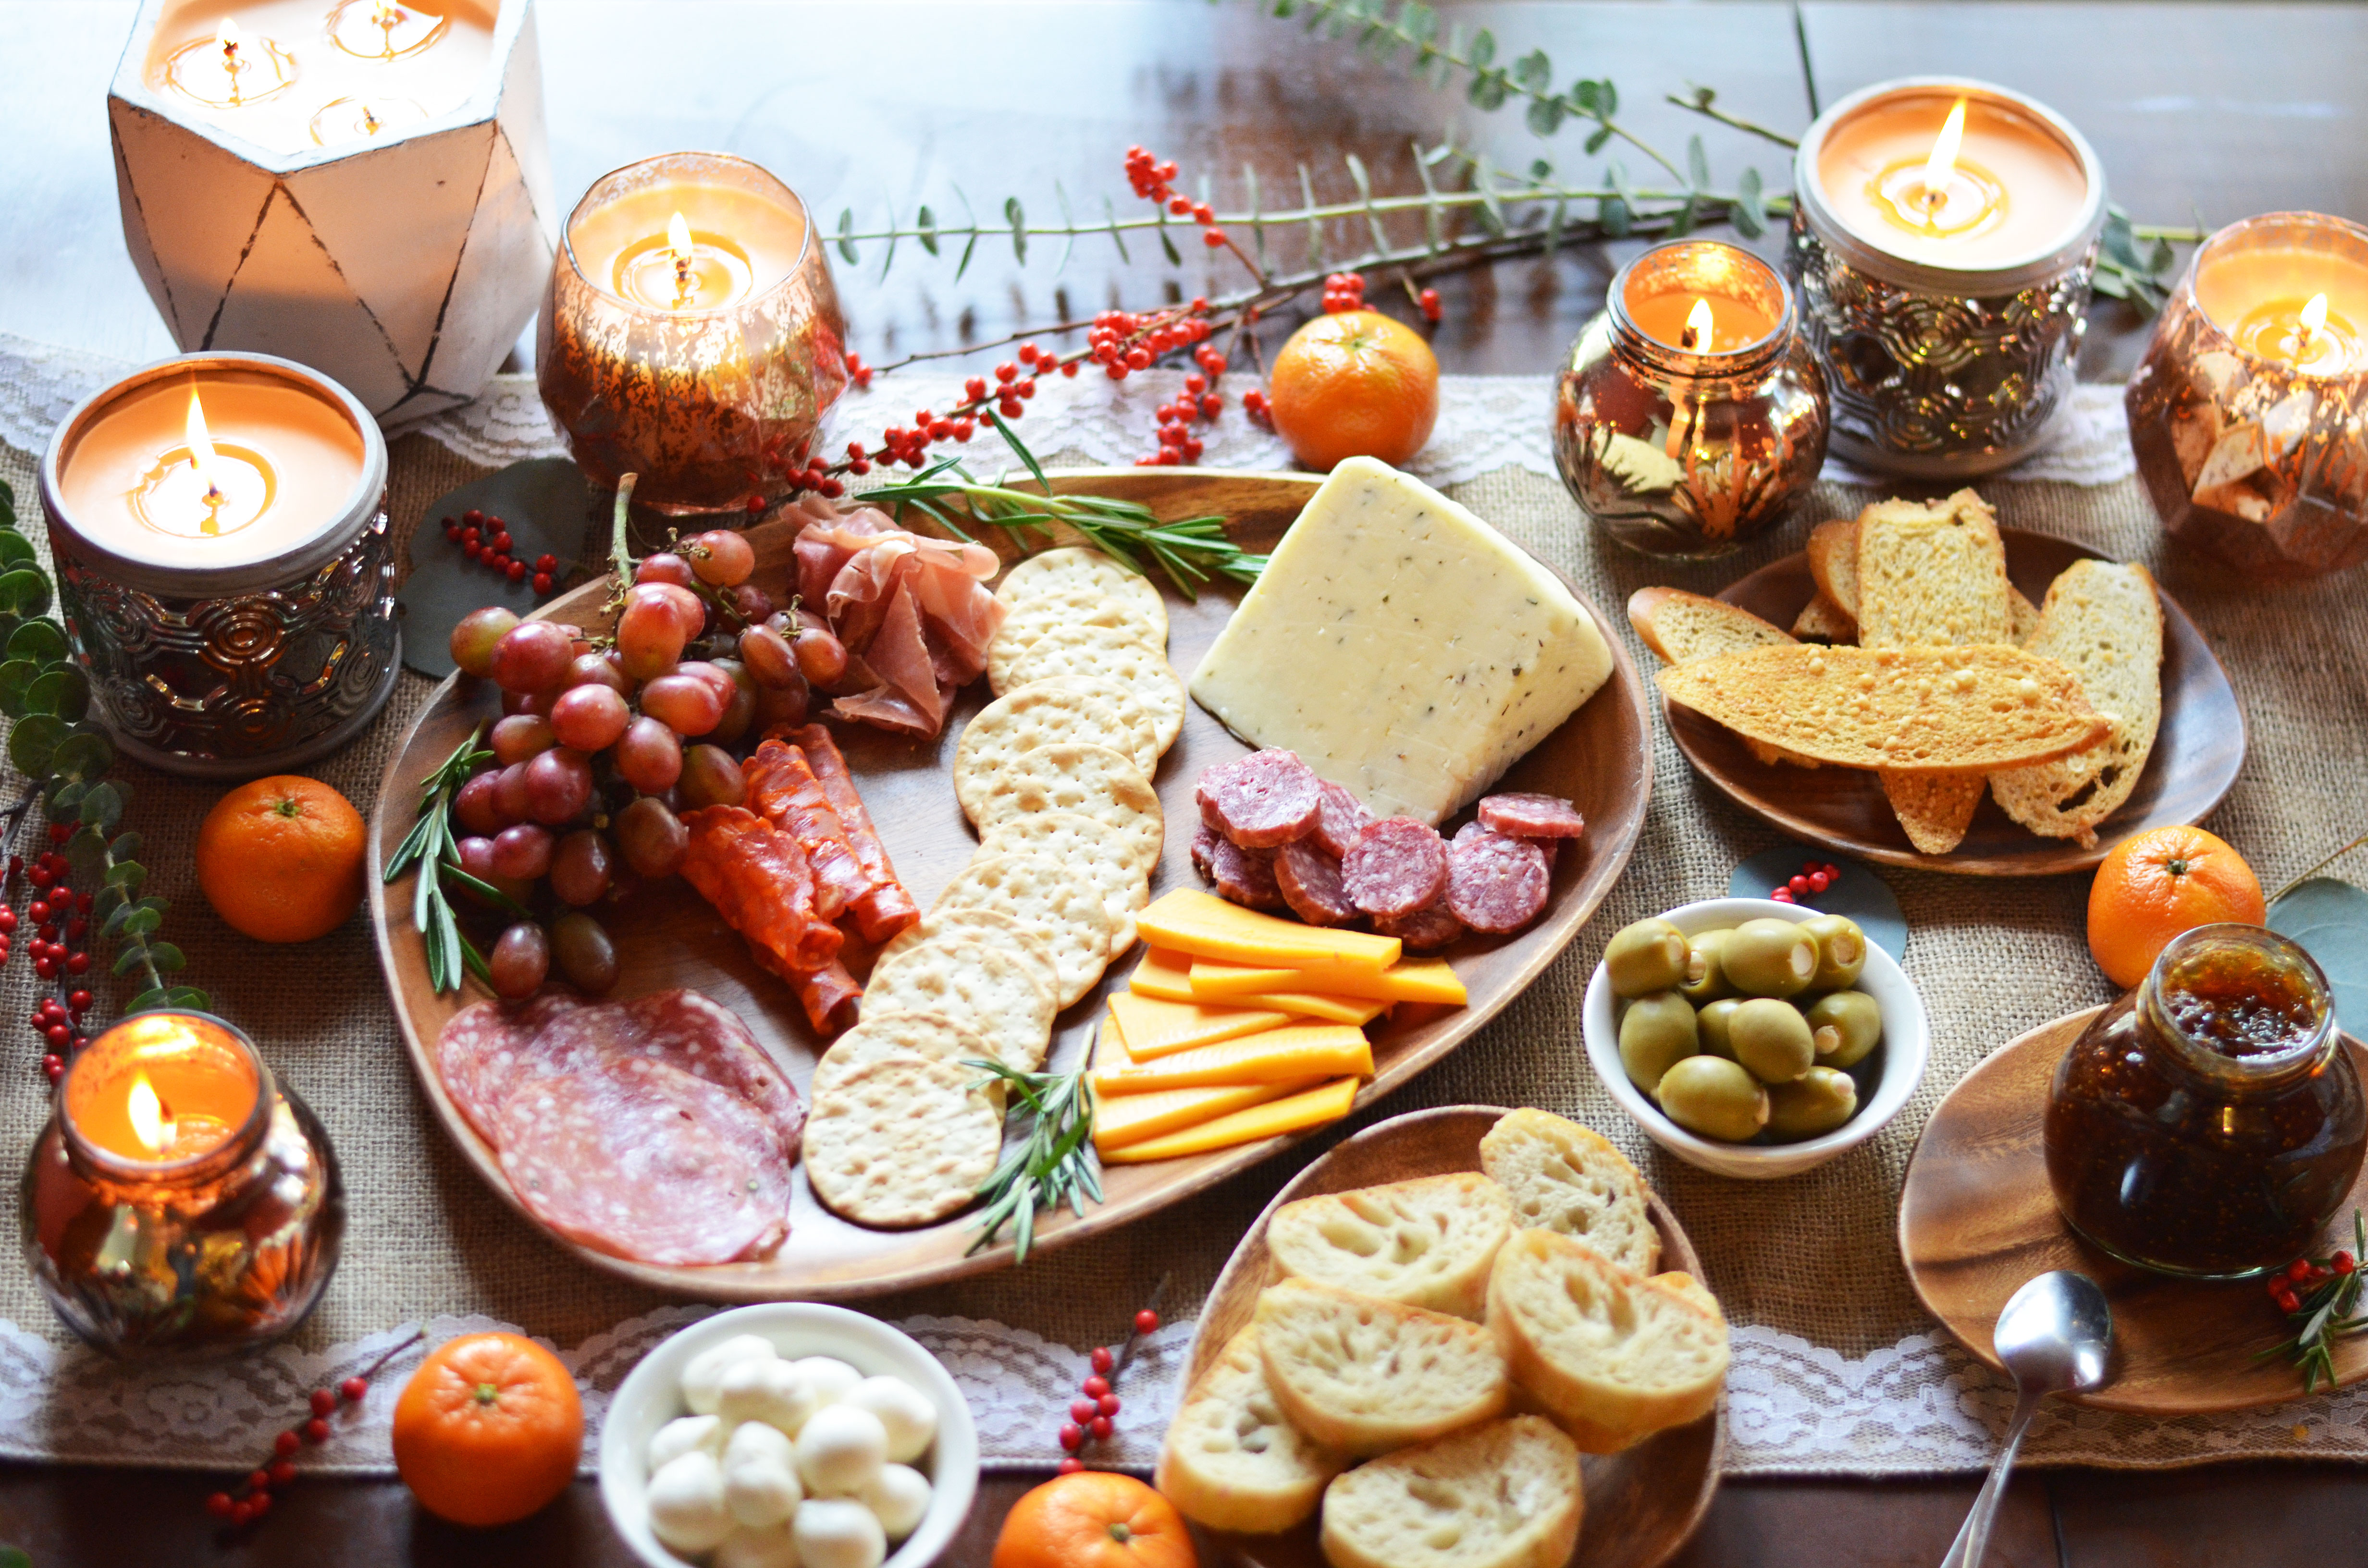 diy charcuterie spread - perfect meat and cheese plate | www.bylaurenm.com